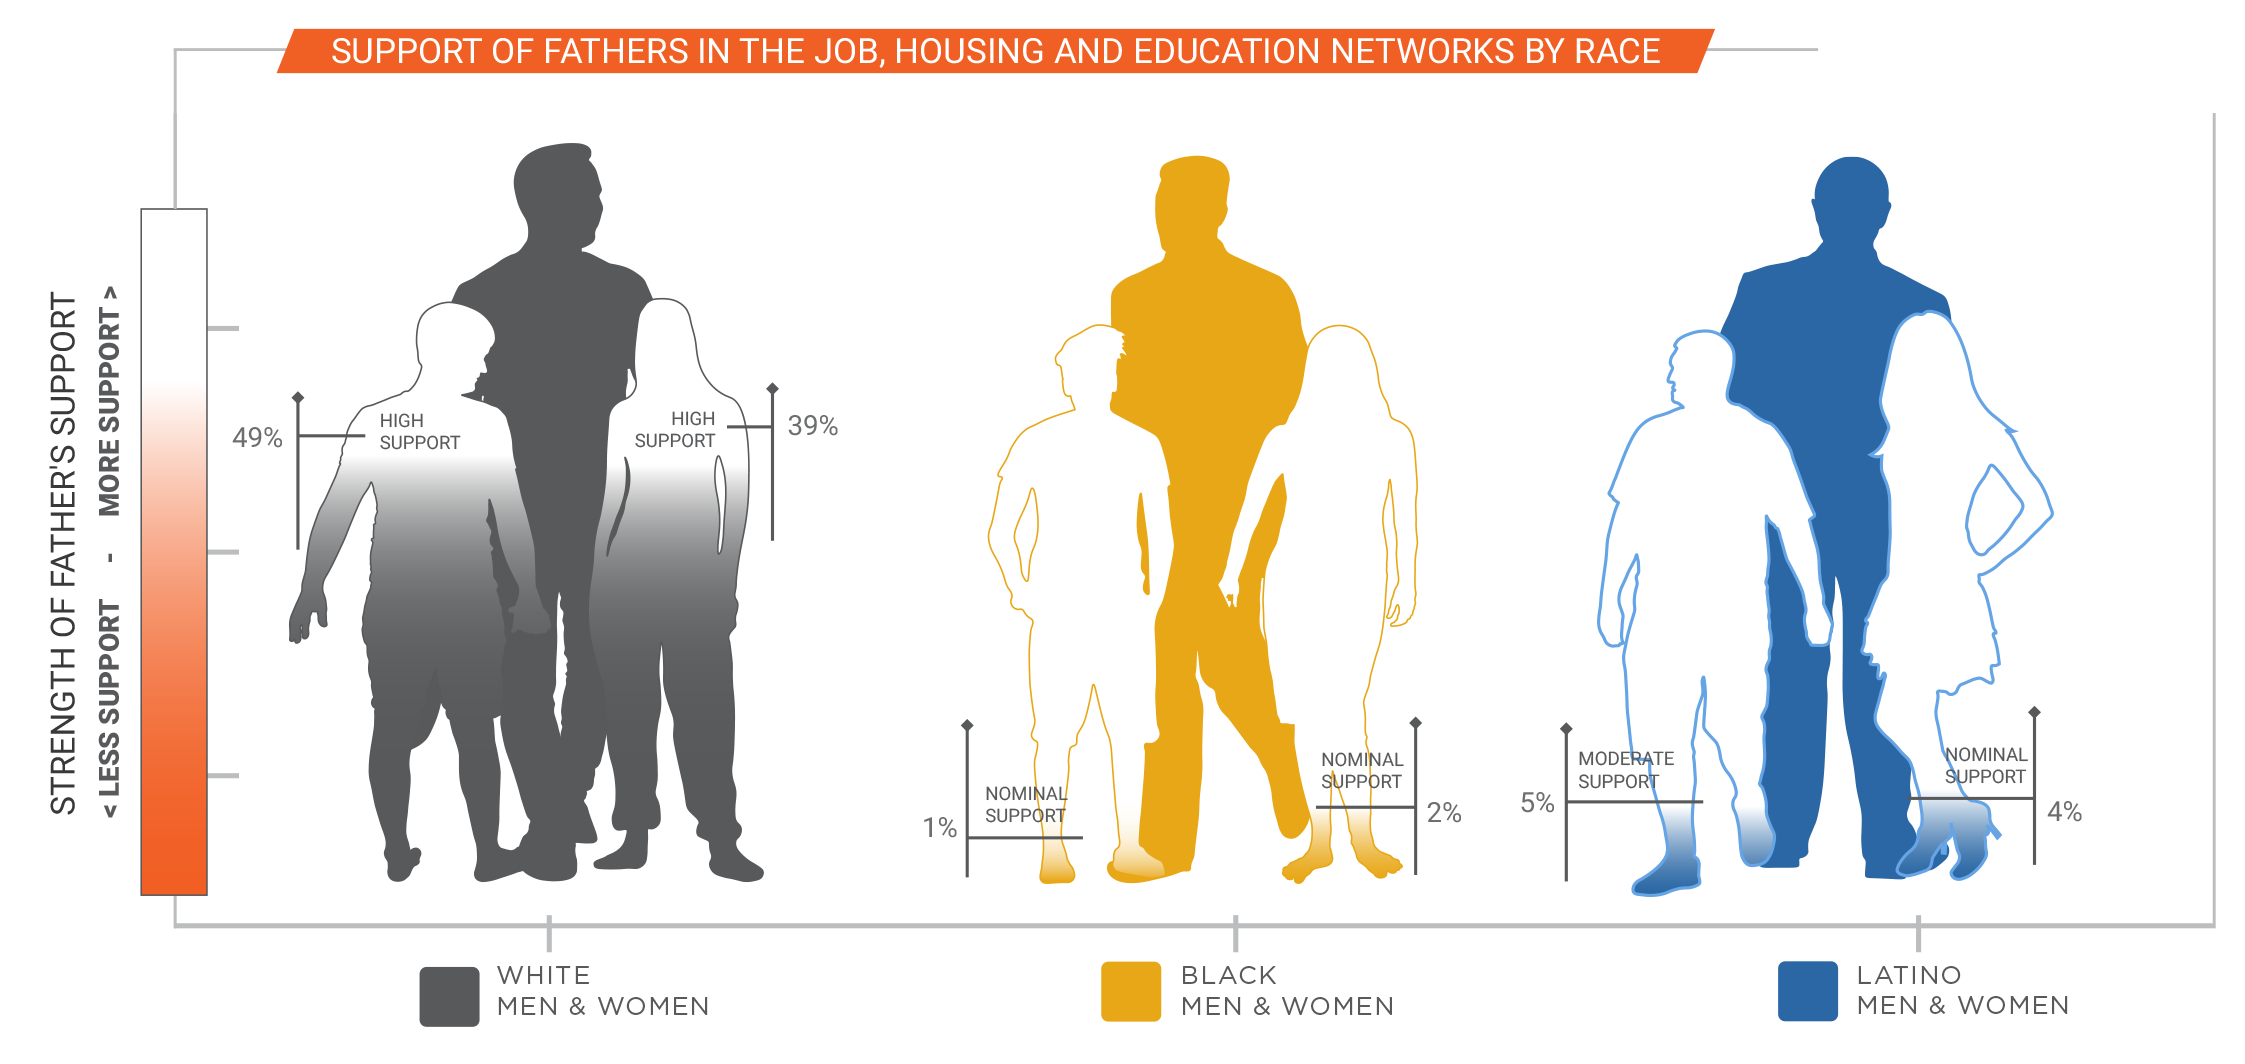 Support of fathers in the job, housing and education networks by race